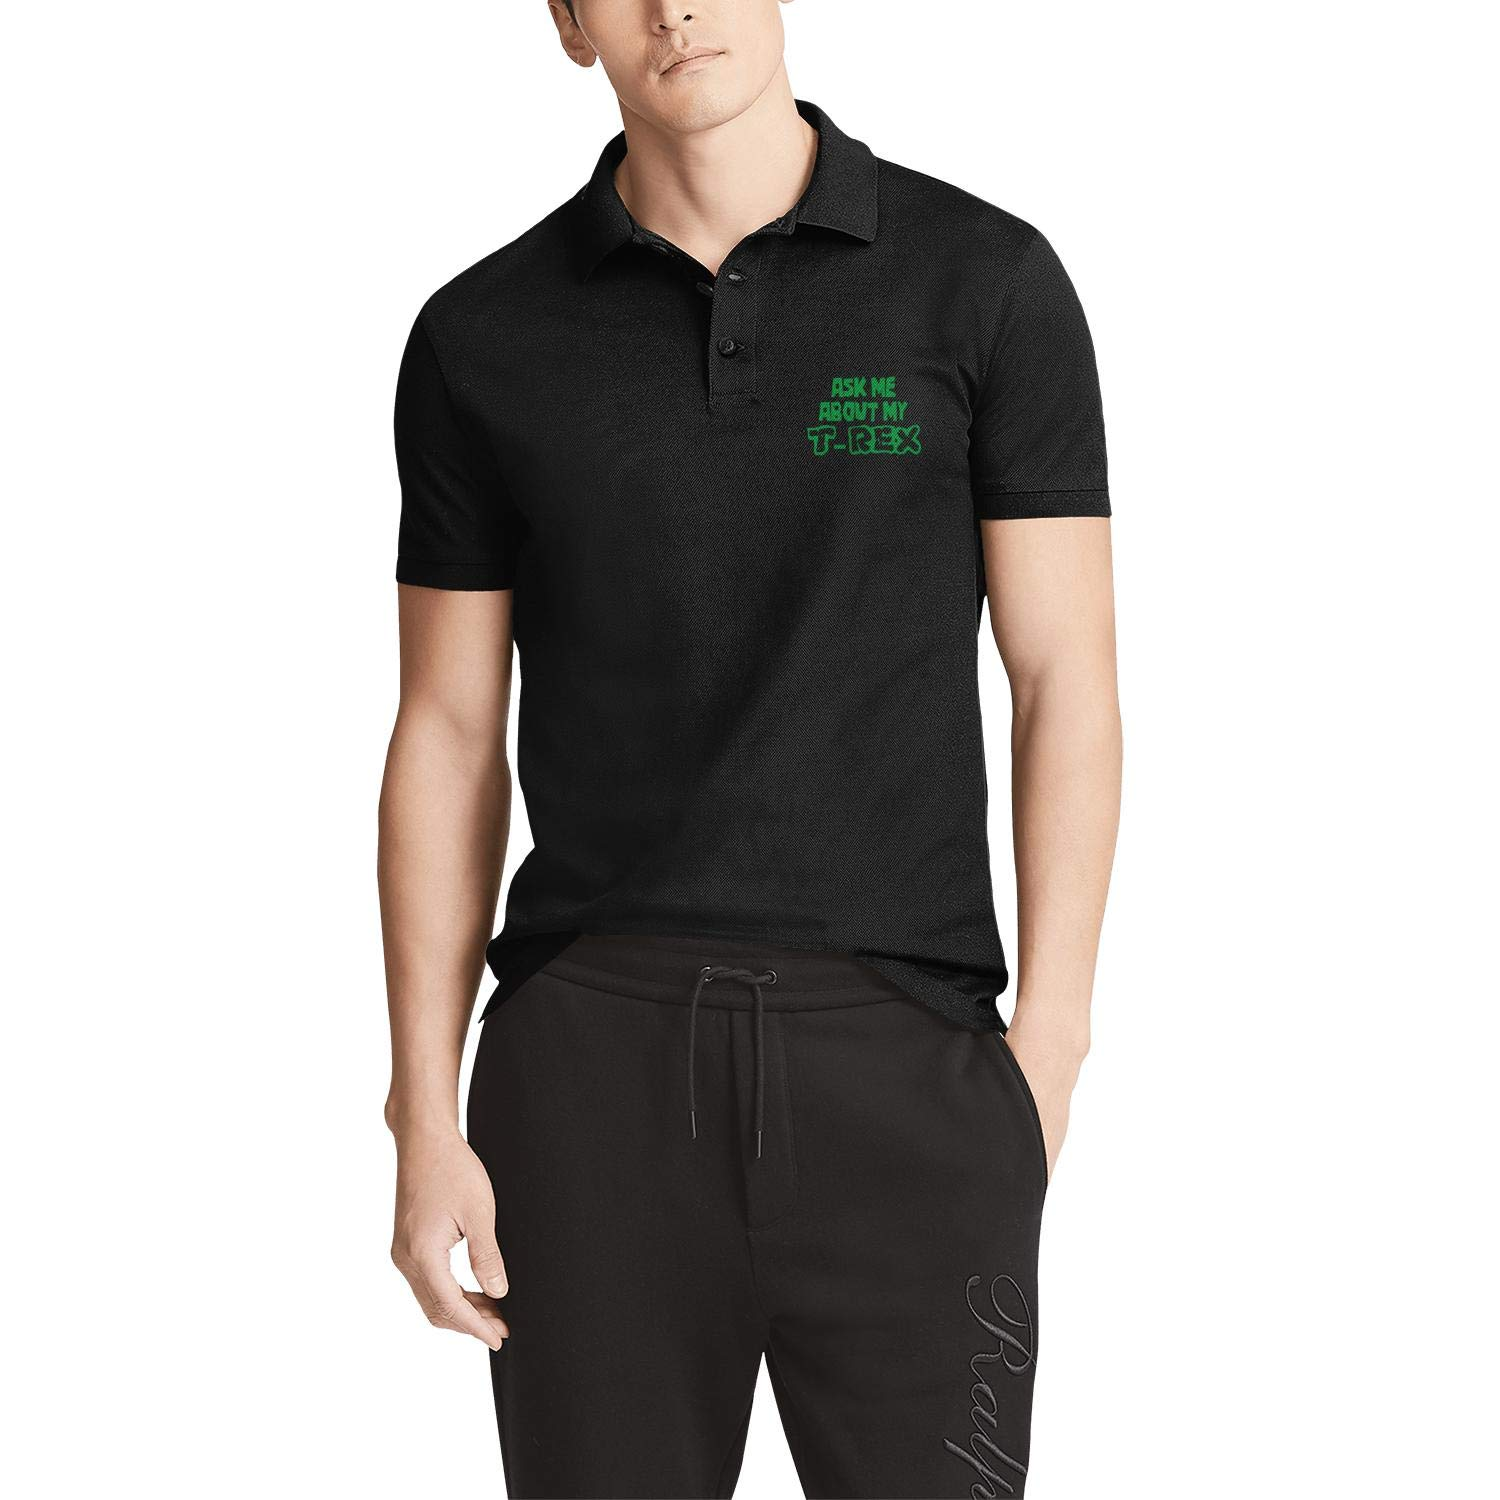 WENL Ask Me About My T-Rex Mens Slim Fit Fashion Polo Shirt